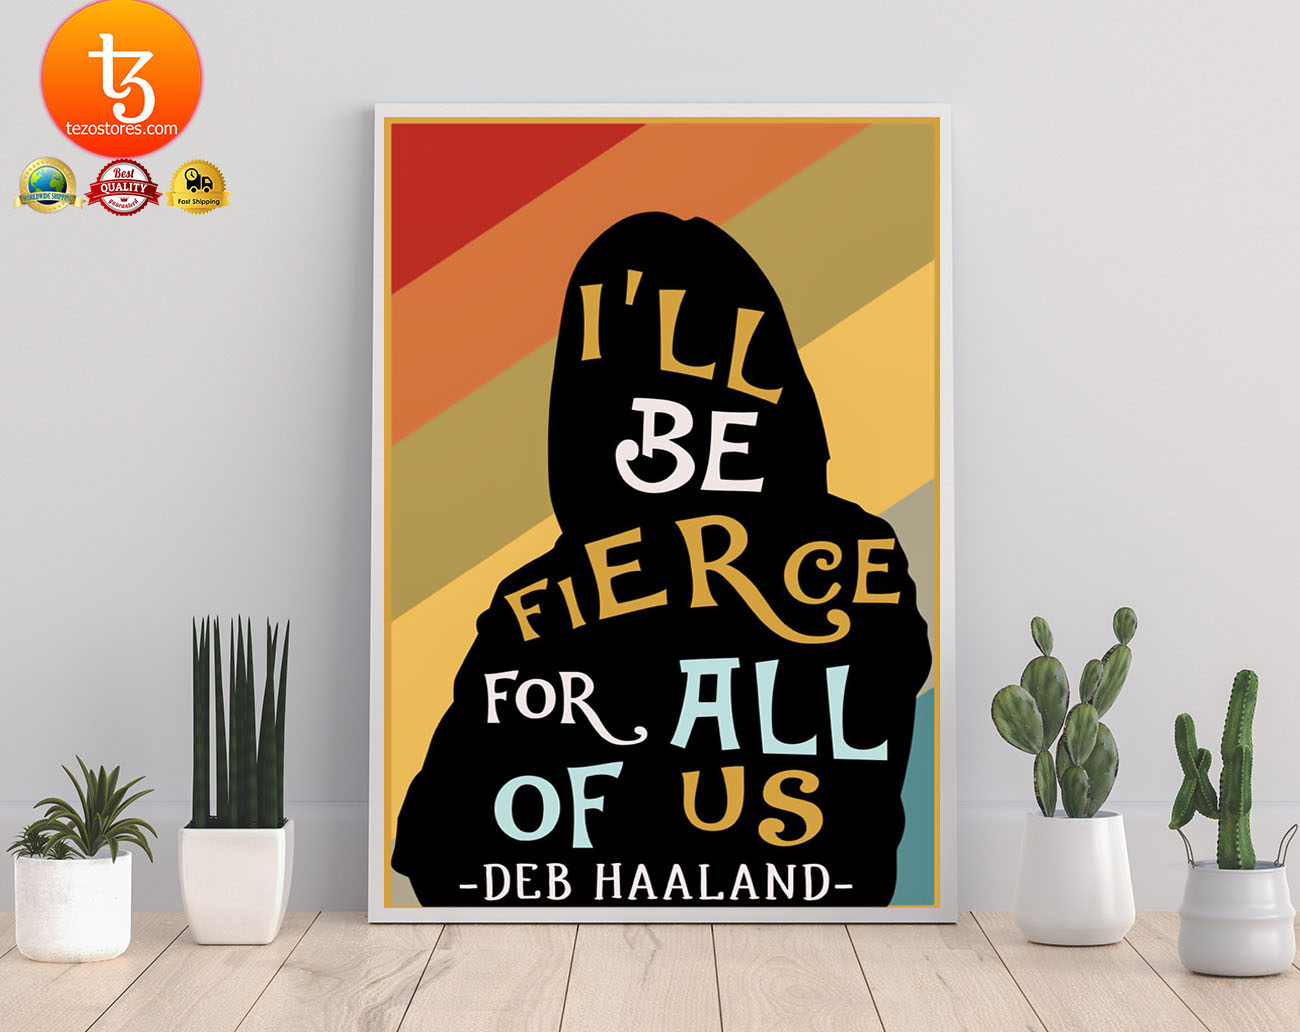 I'll be fierce for all of us deb haaland poster 21